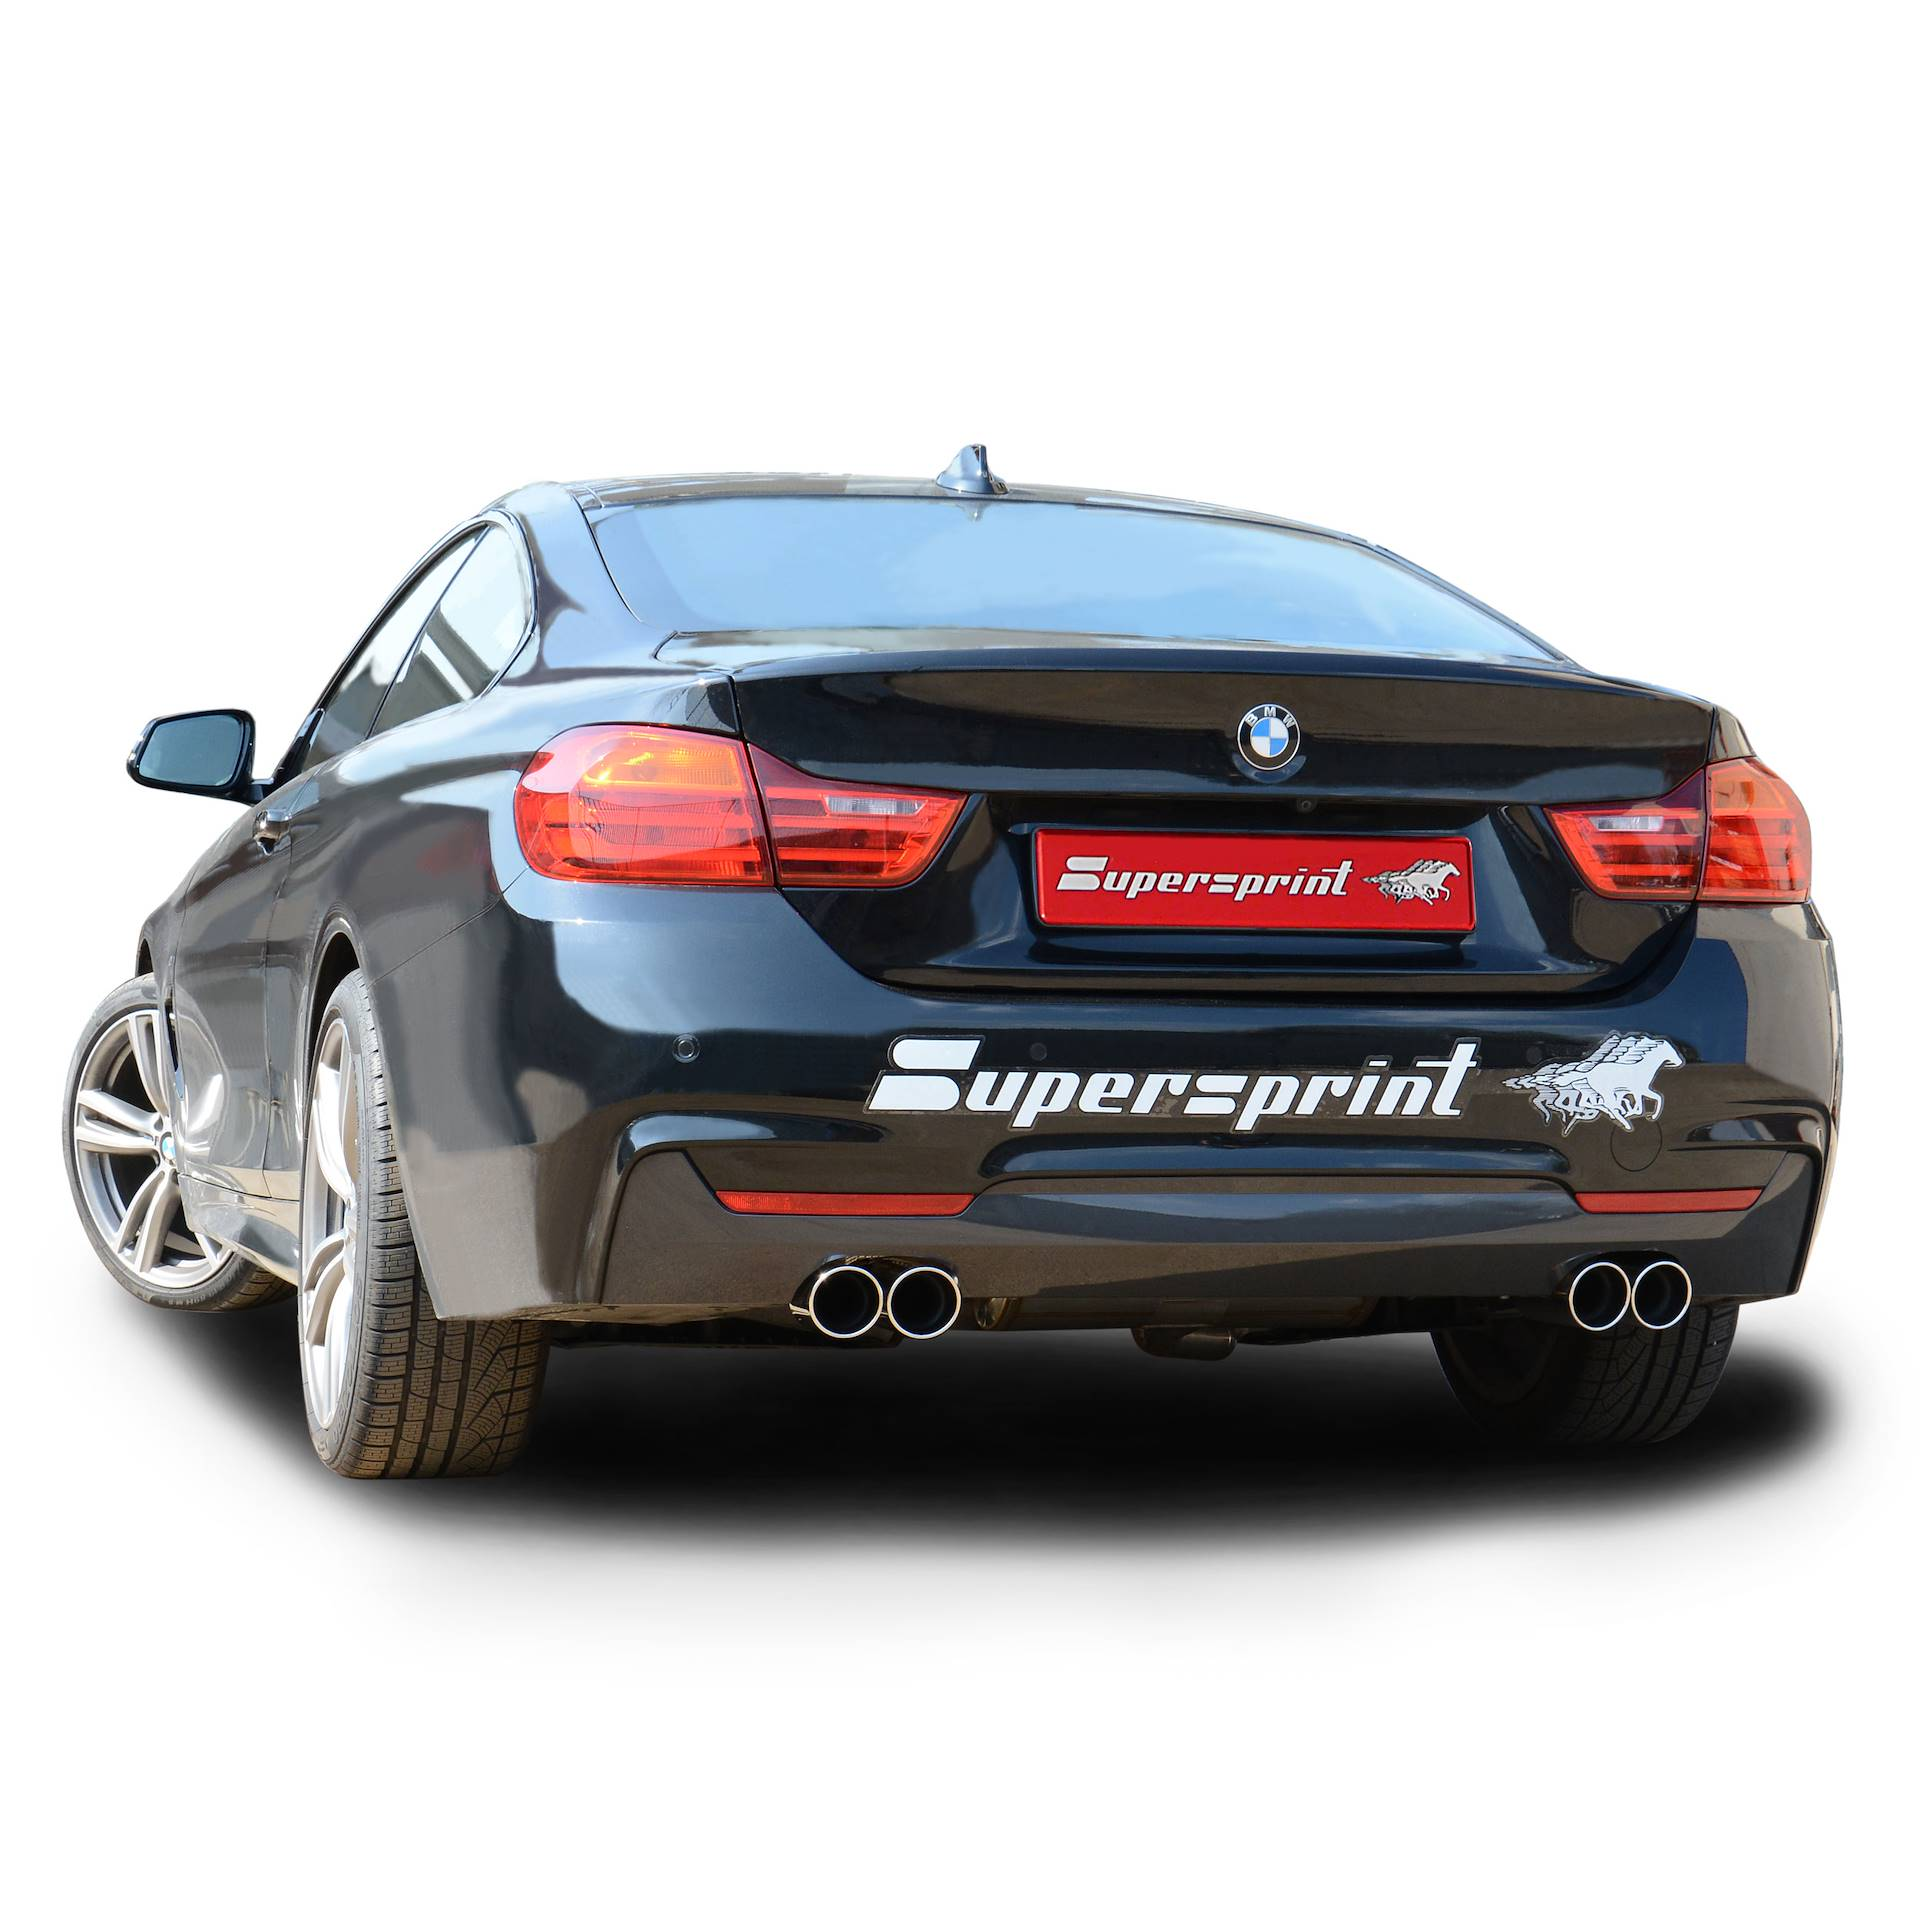 BMW - BMW F32 Coupè 435d xDrive (313 Hp) 2013 ->